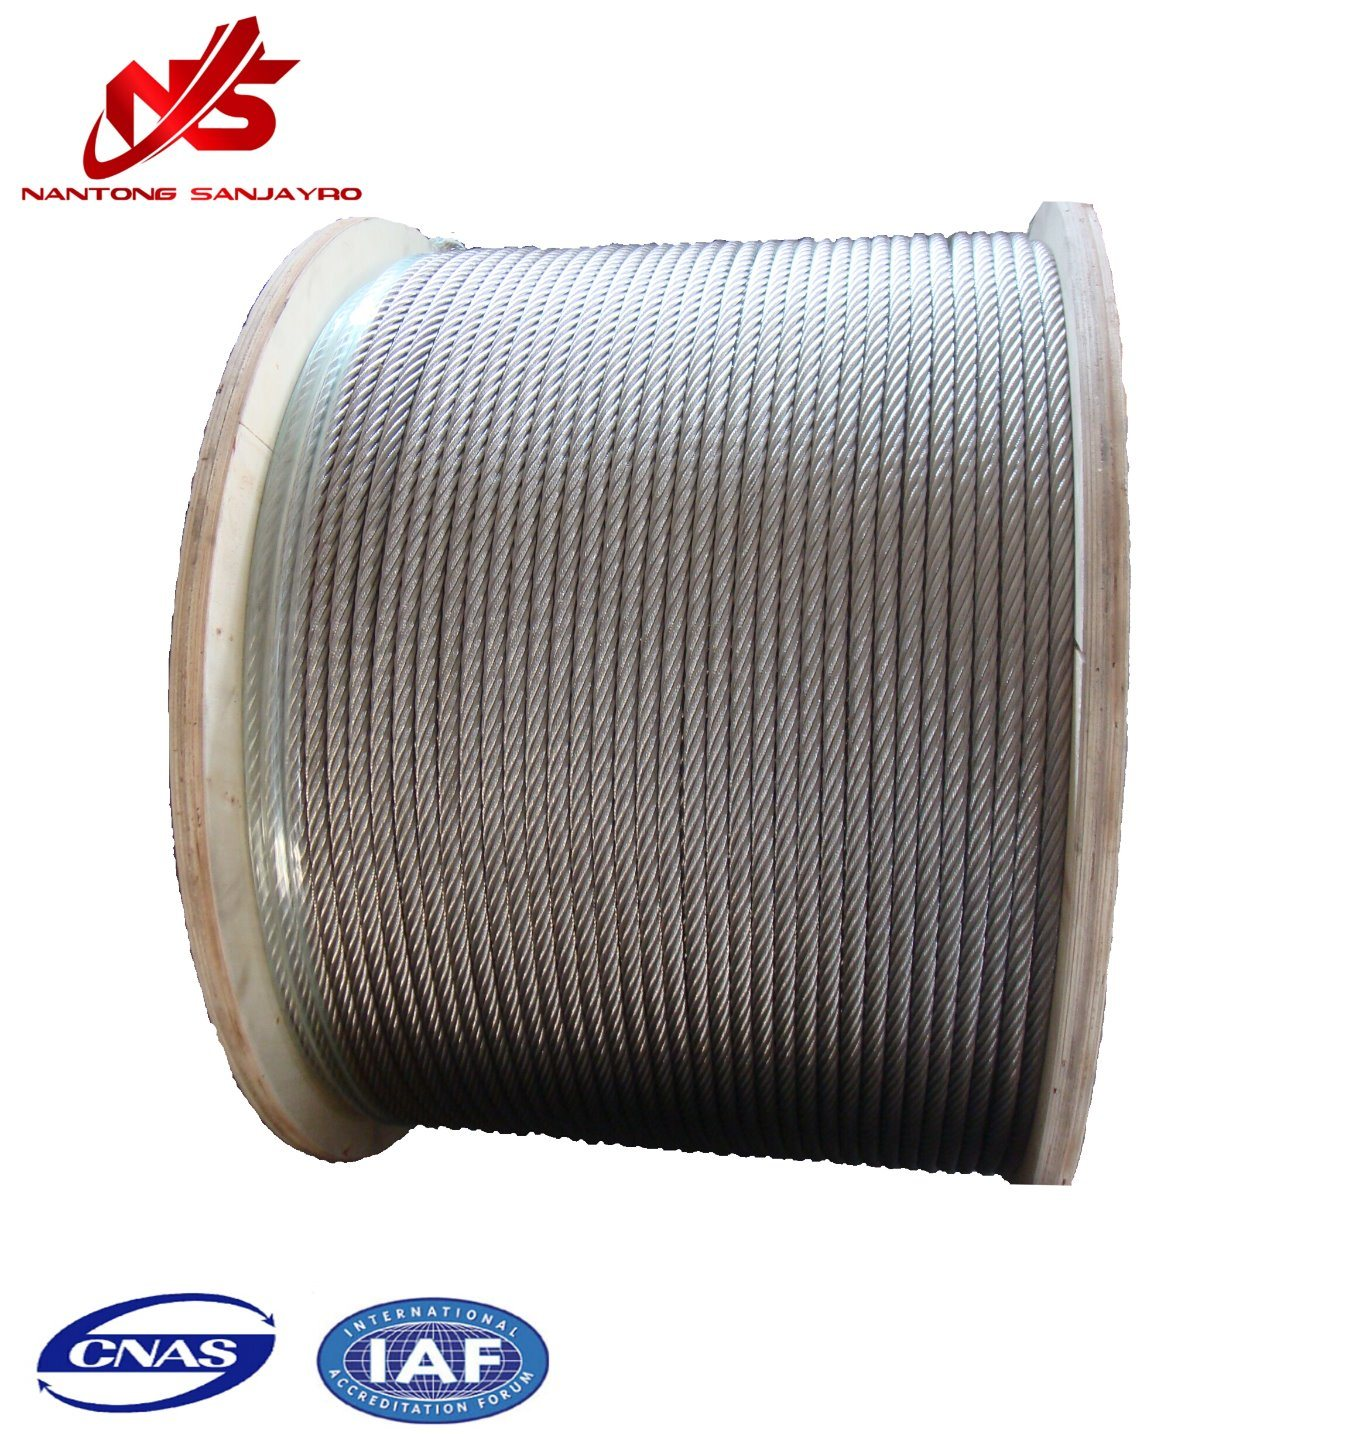 China Galvanized Aircraft 6X19 7/32 Inch Size Steel Wire Rope ...